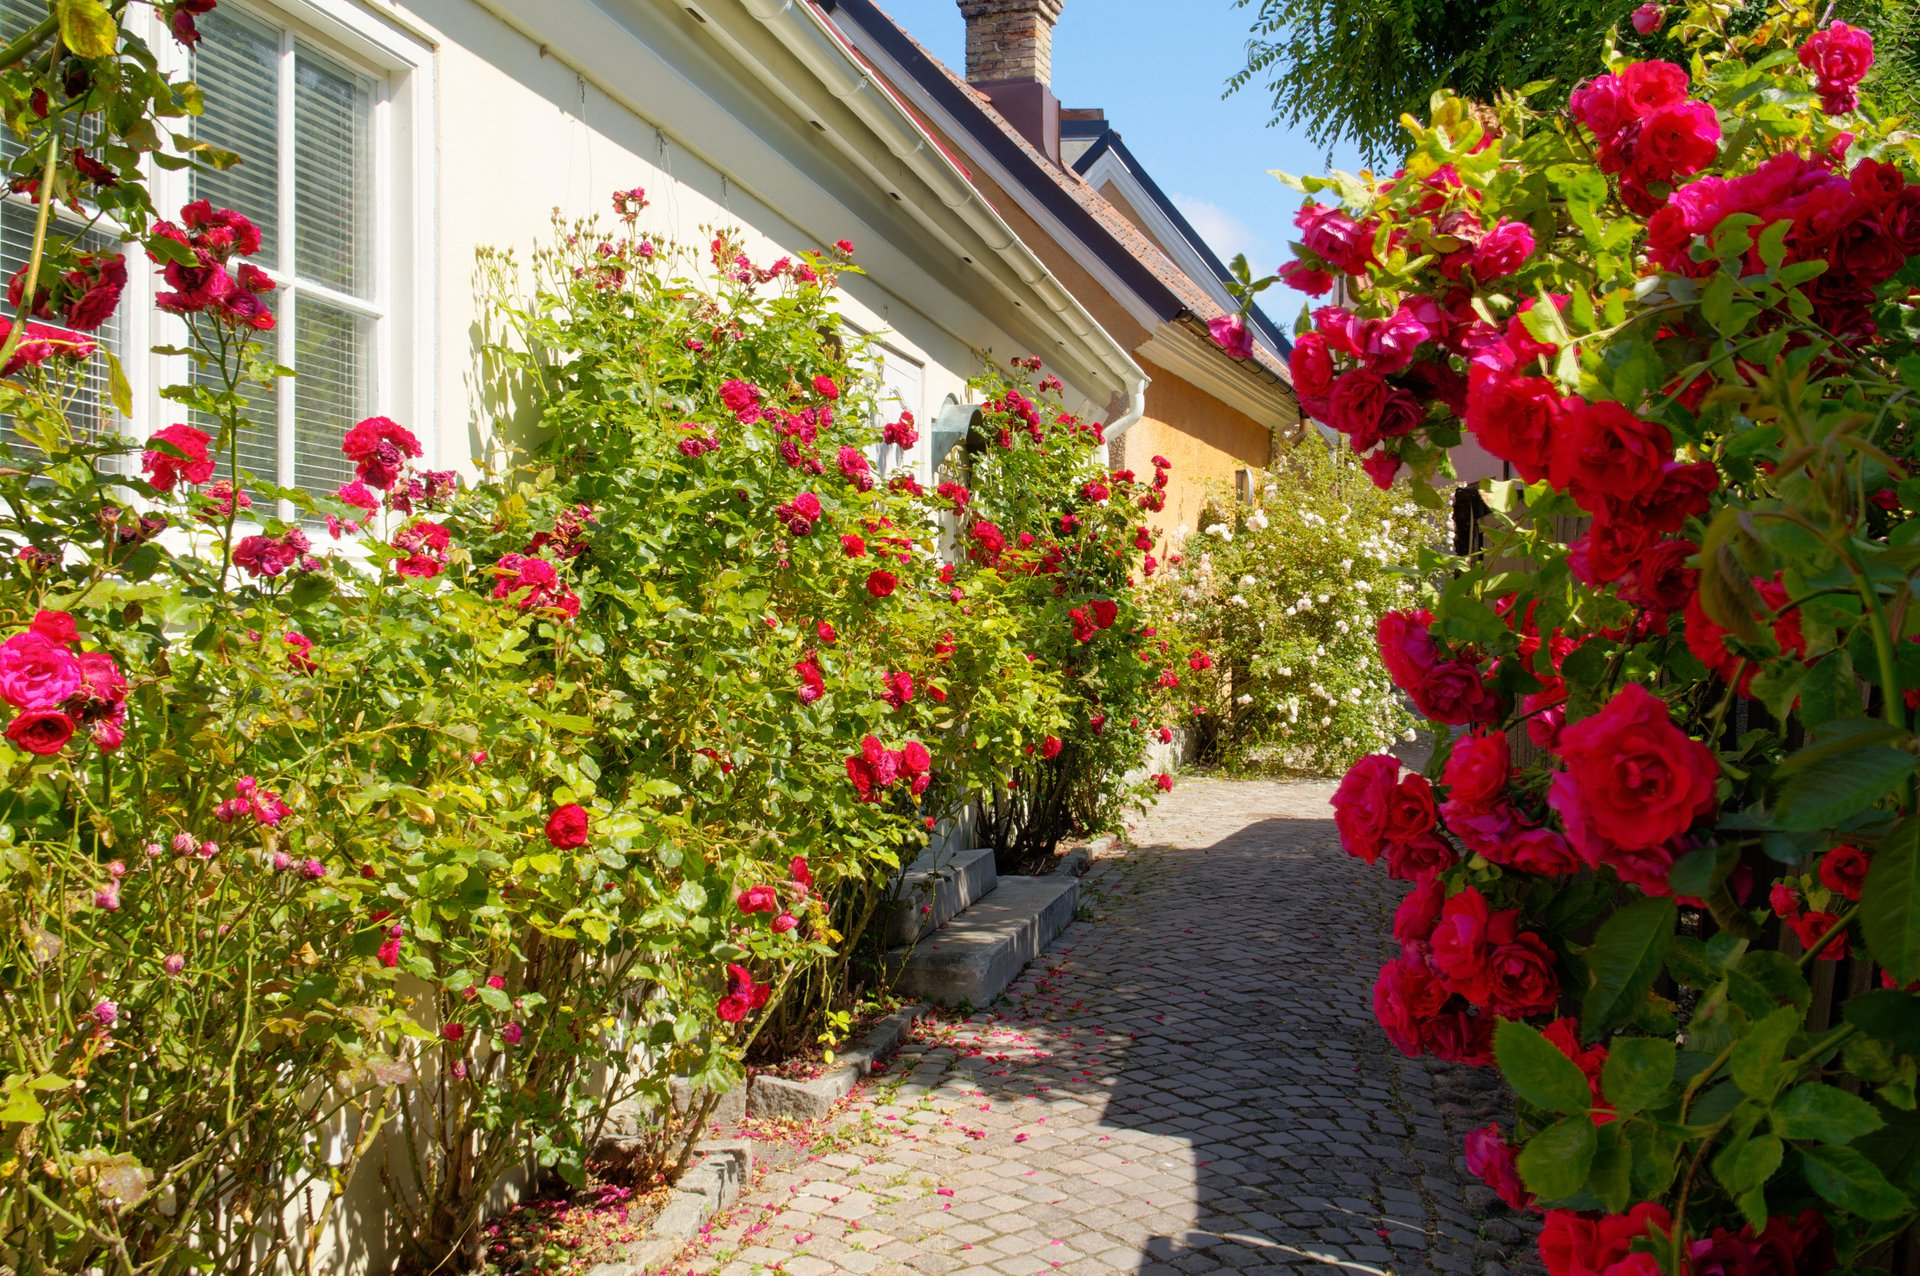 The Island of Roses in Sweden - Best Season 2020